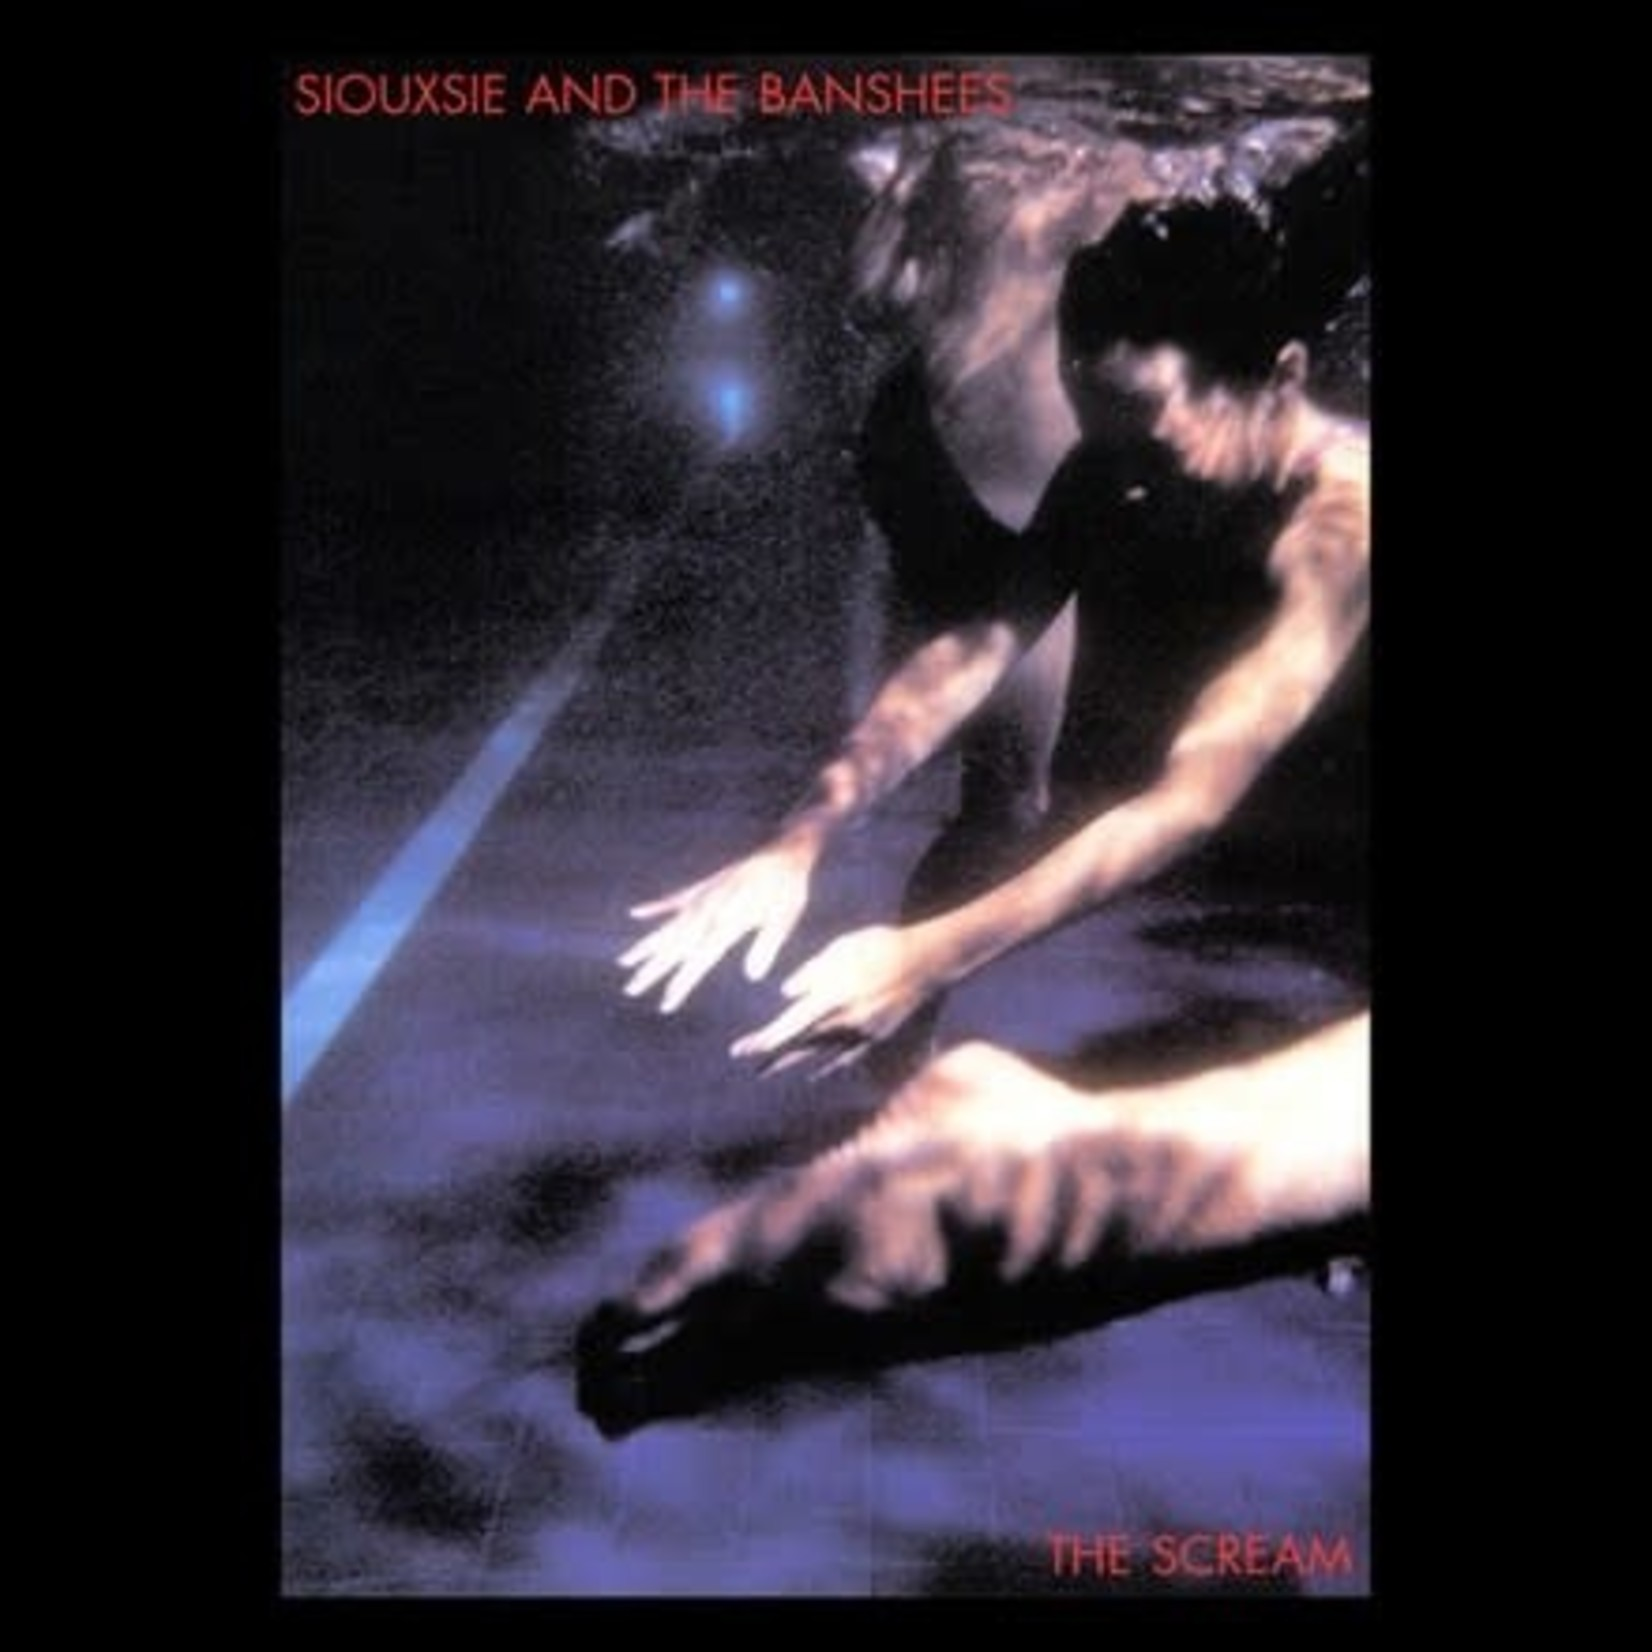 [New] Siouxsie & the Banshees: The Scream